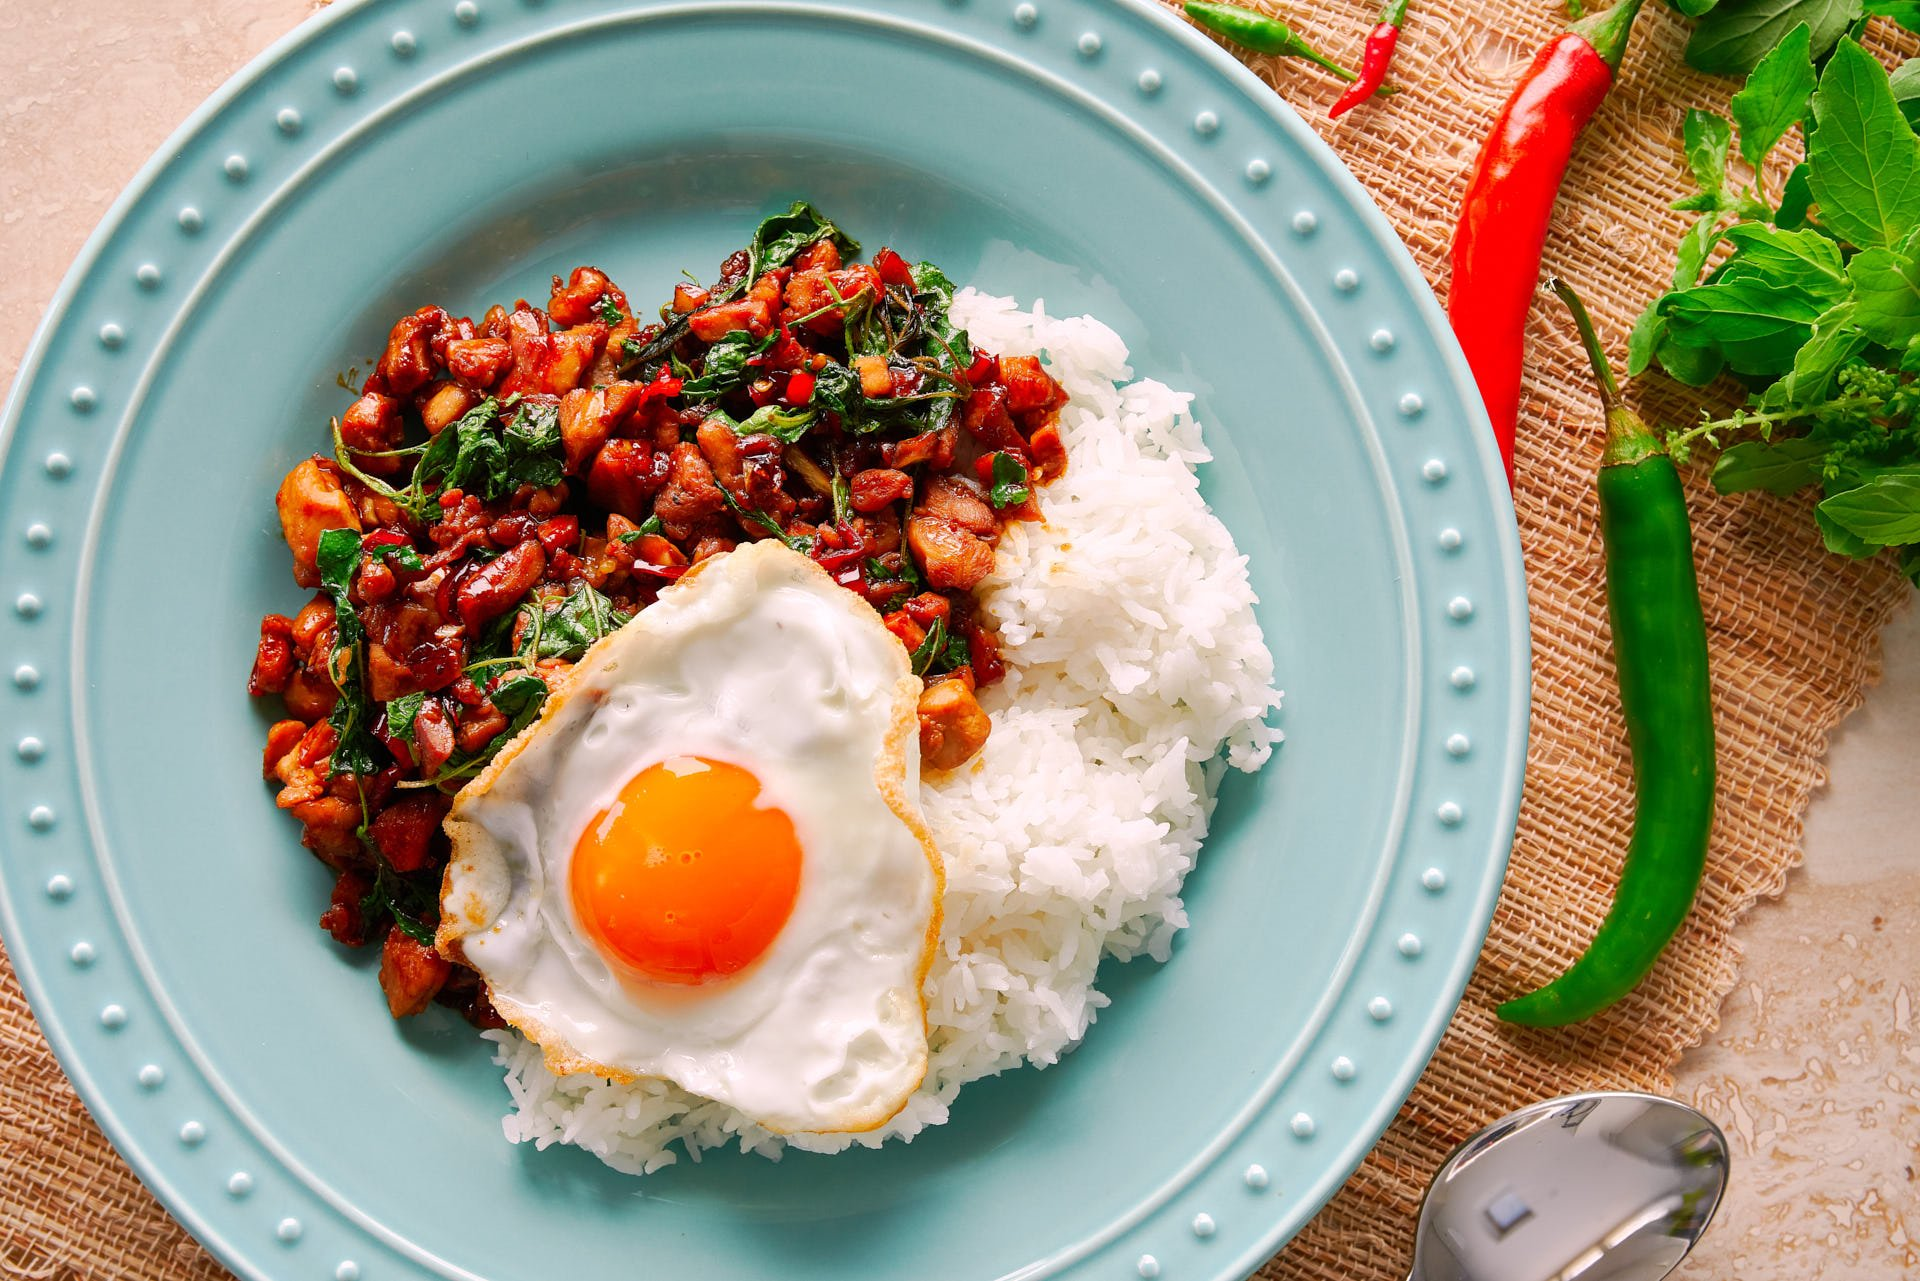 Basil Chicken or Pad Kraprow Gai is one of those easy, rewarding meals that come together in minutes, and yet it's brimming with flavor.